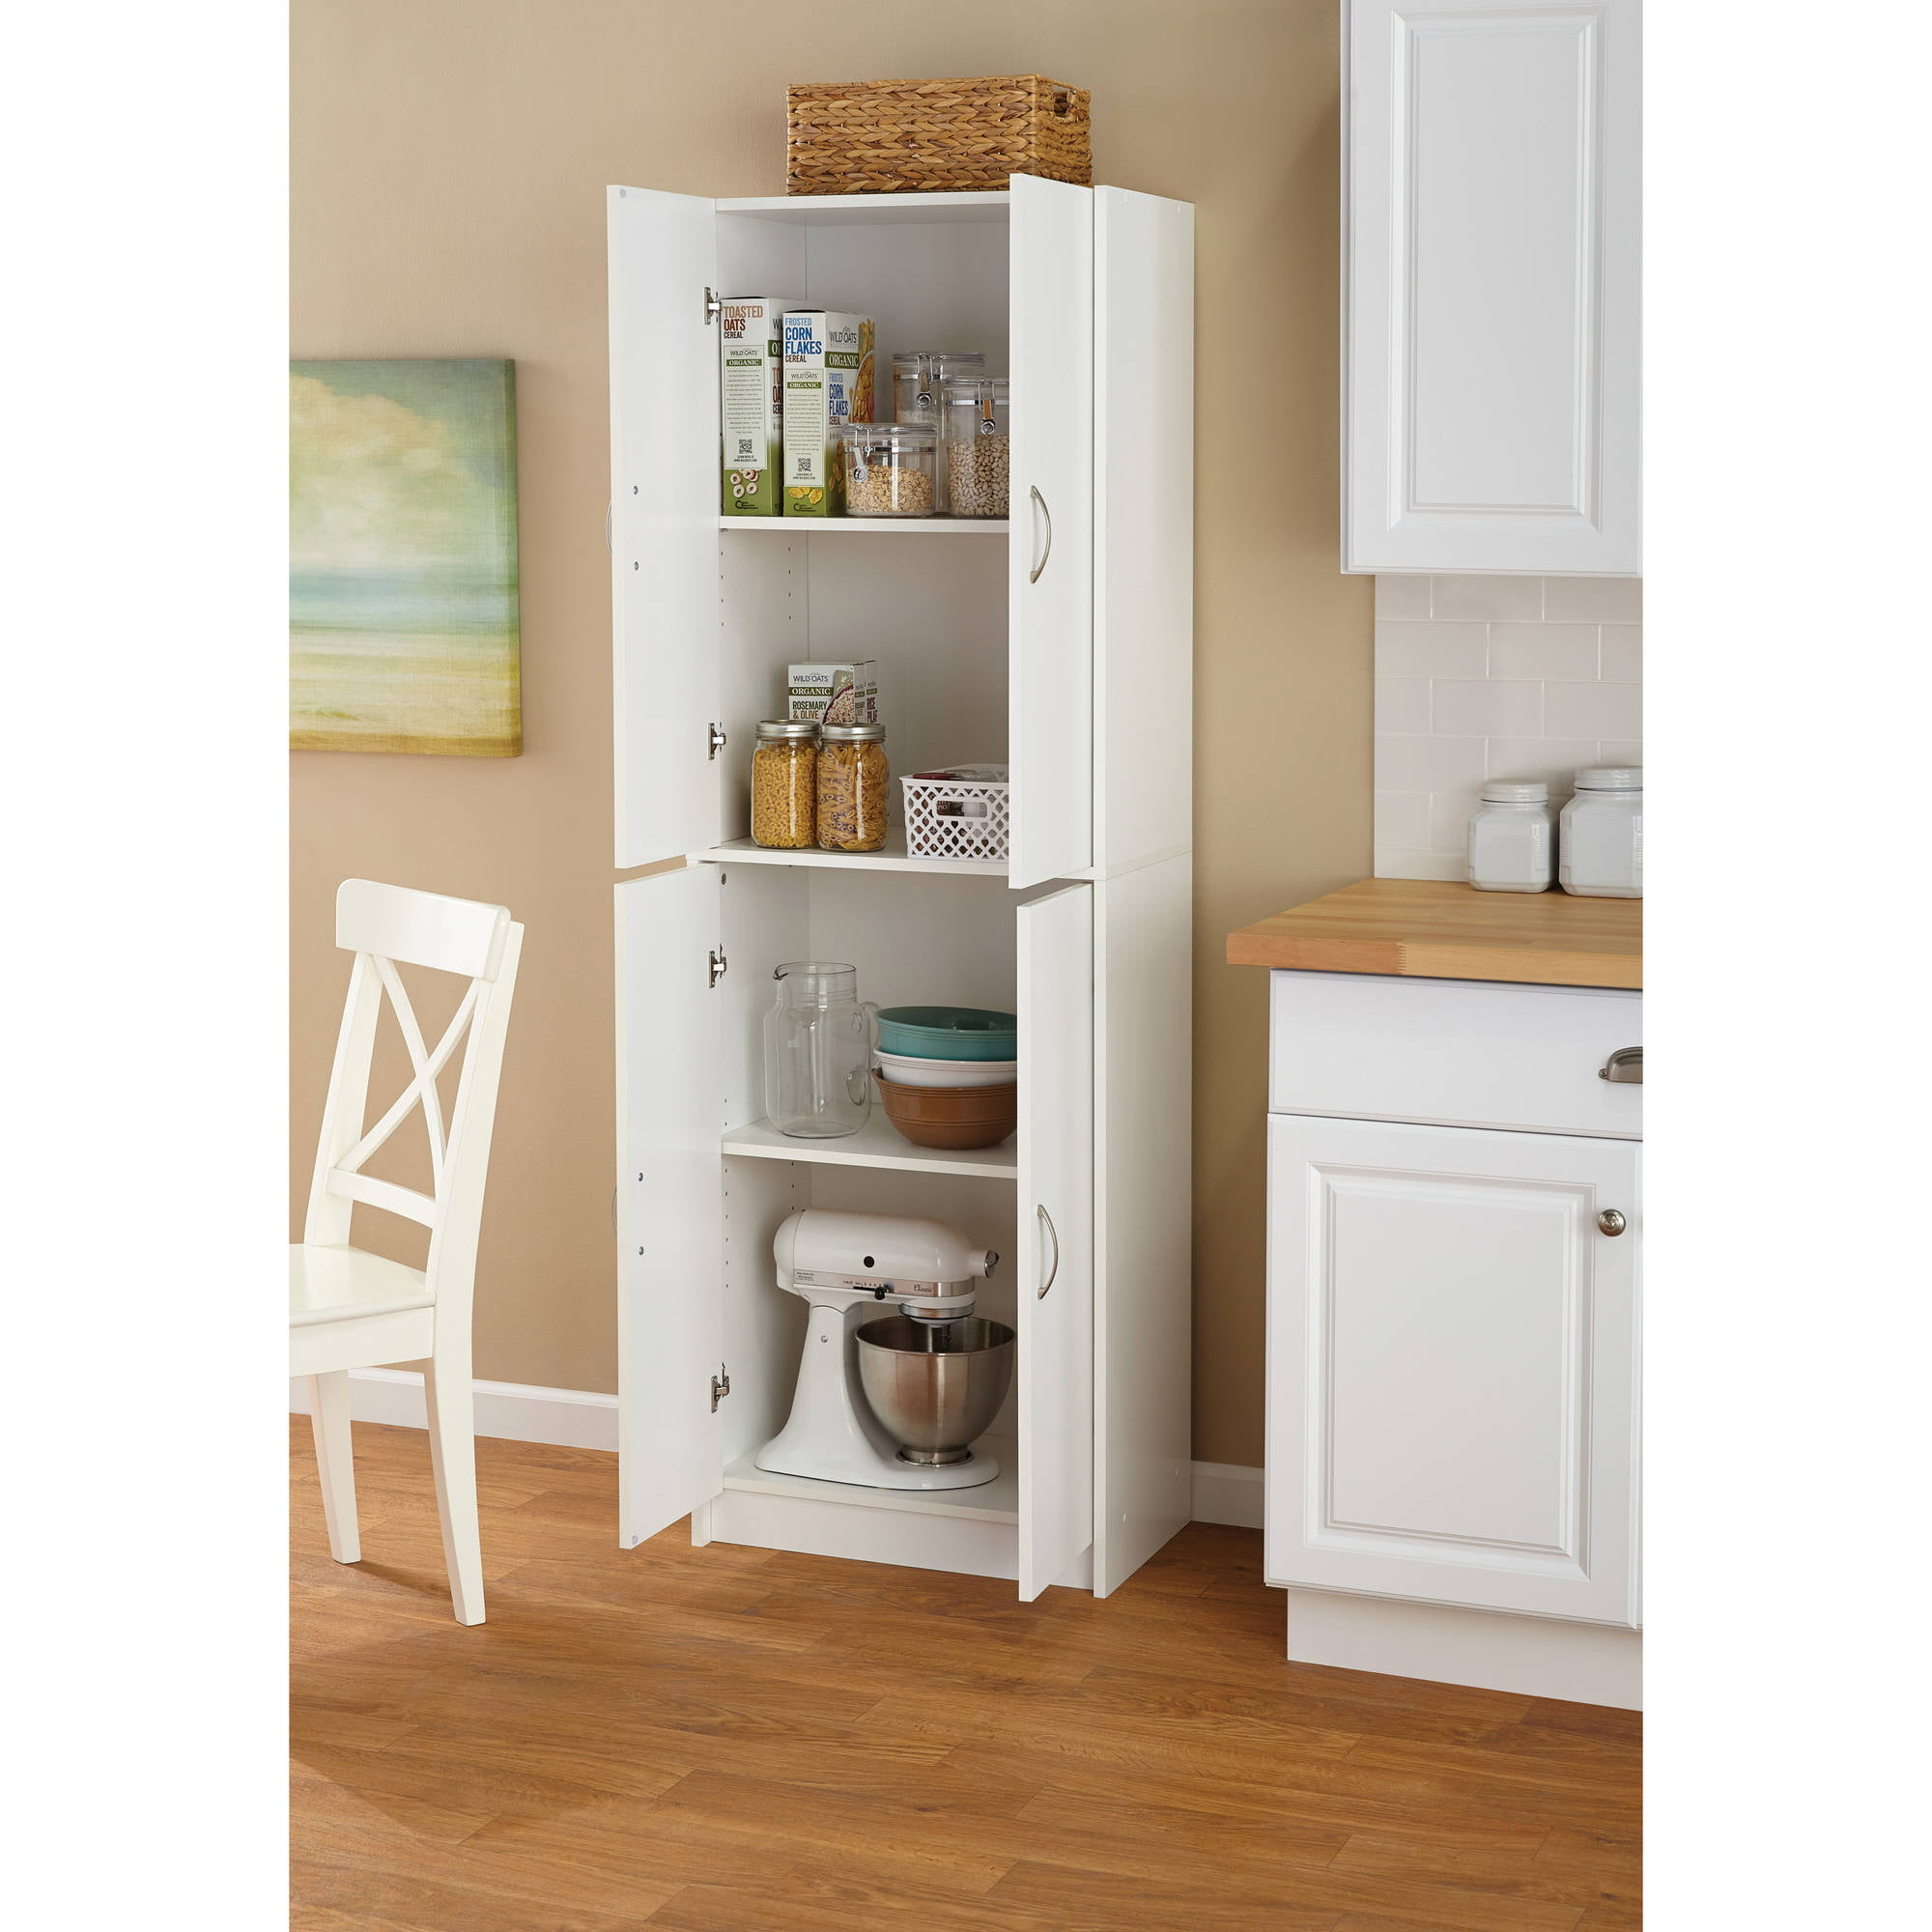 Mainstays 4 Shelf Multipurpose Storage Cabinet White Walmart